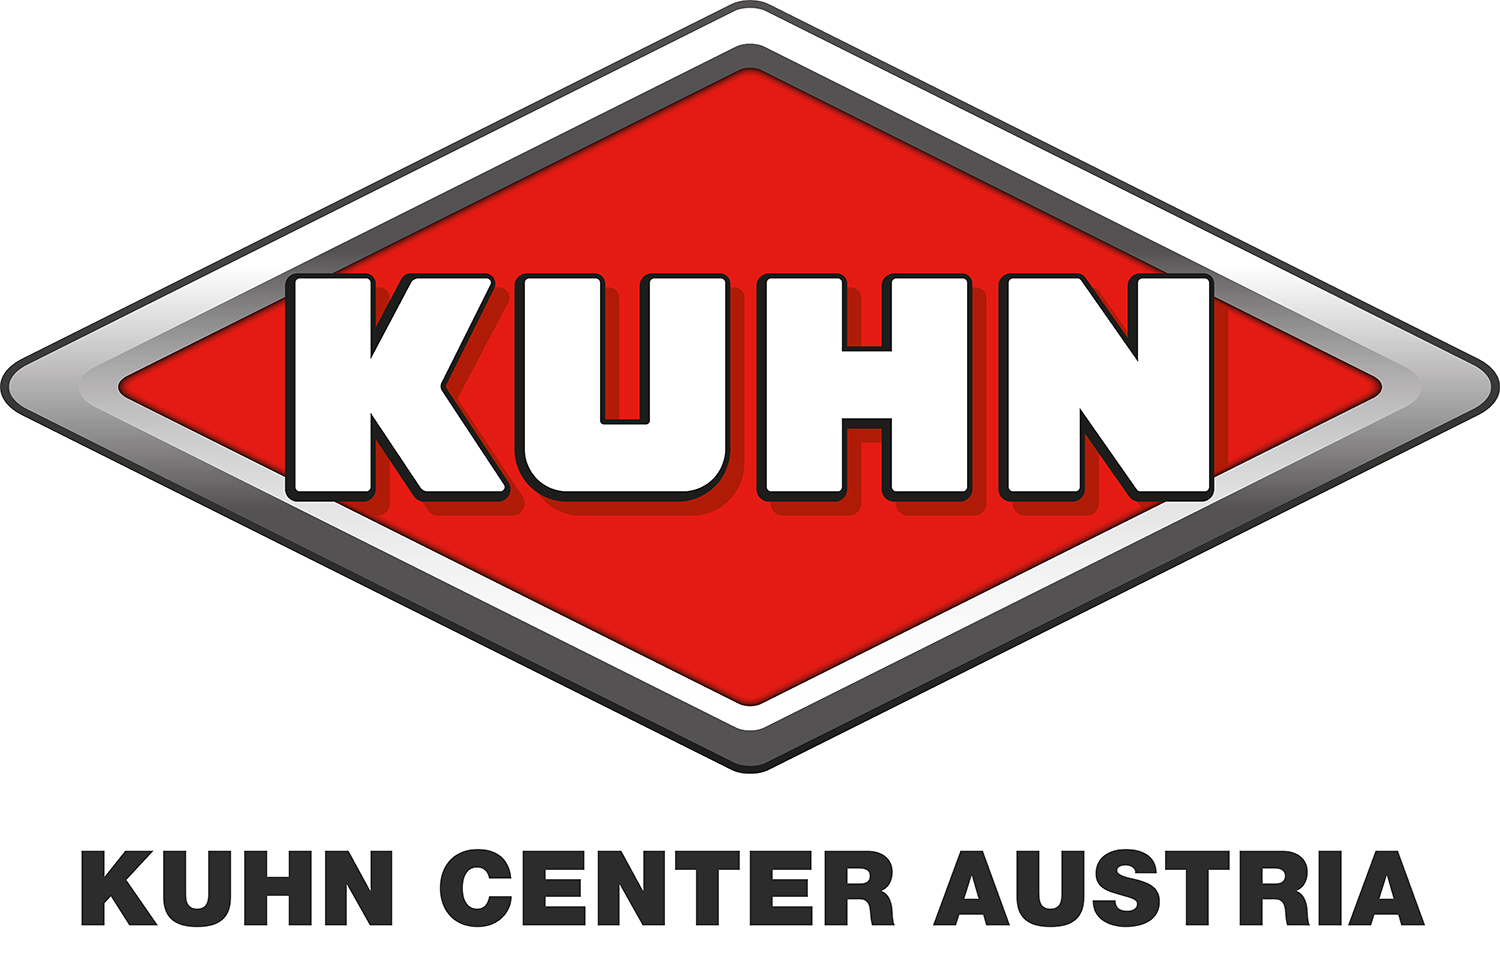 Kuhn Center Austria